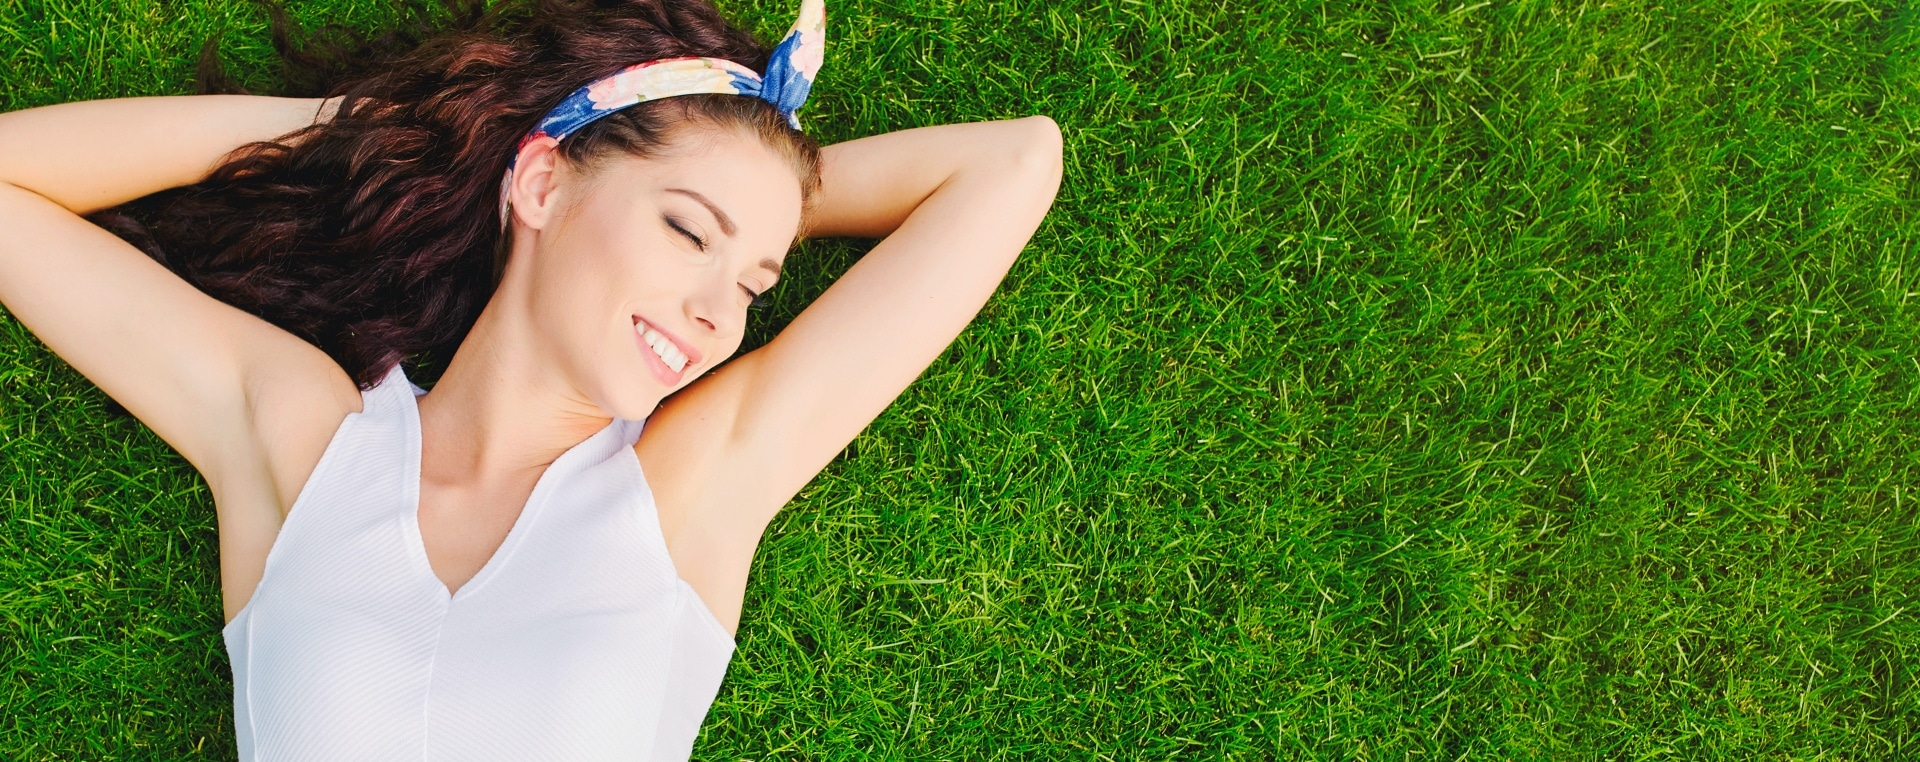 Woman lying on the grass with her arms up